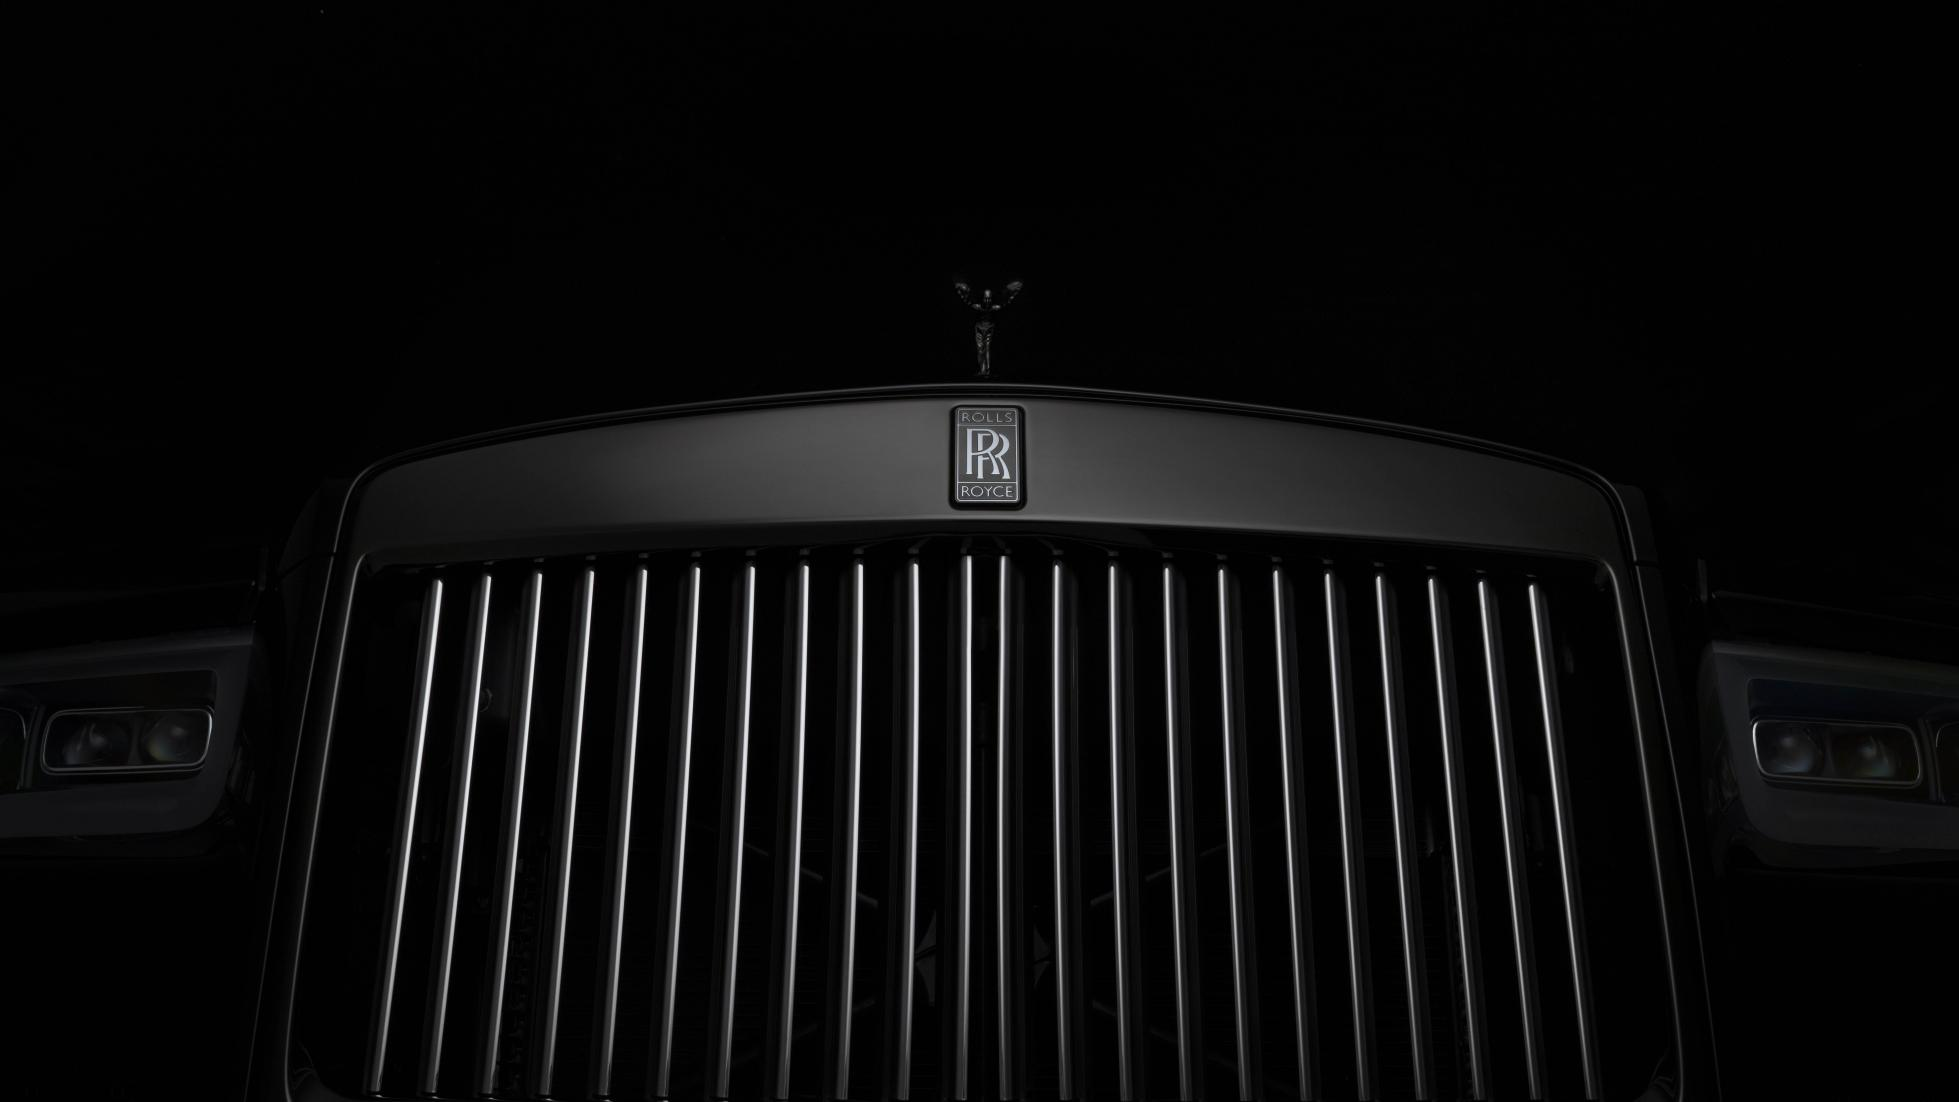 This Rolls-Royce Black Badge Cullinan gets more power